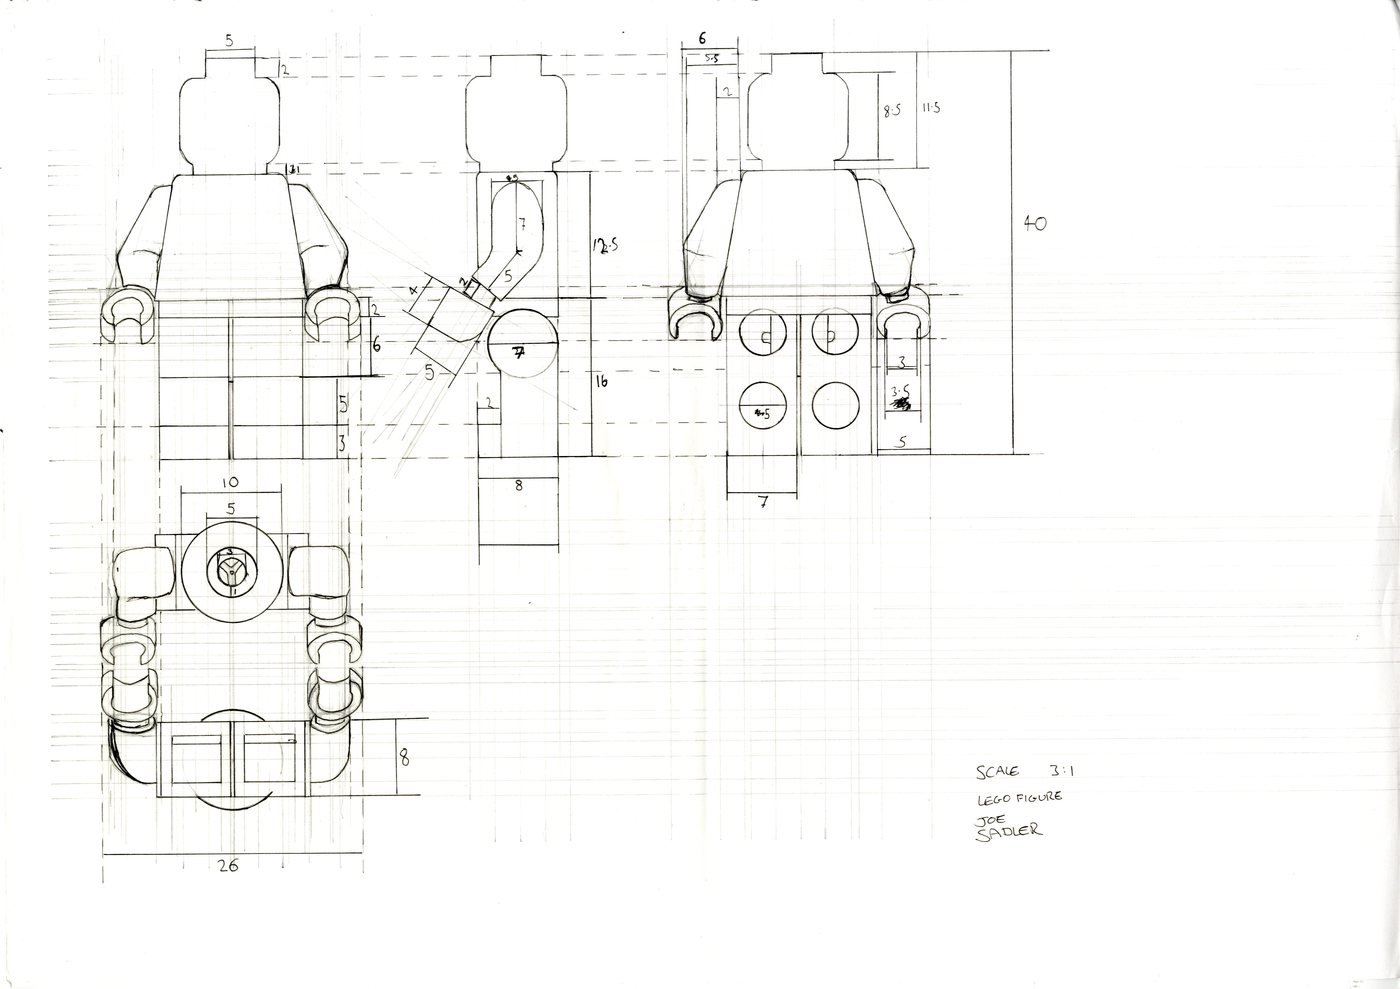 CAD and Technical Drawing by Joseph Sadler at Coroflot.com